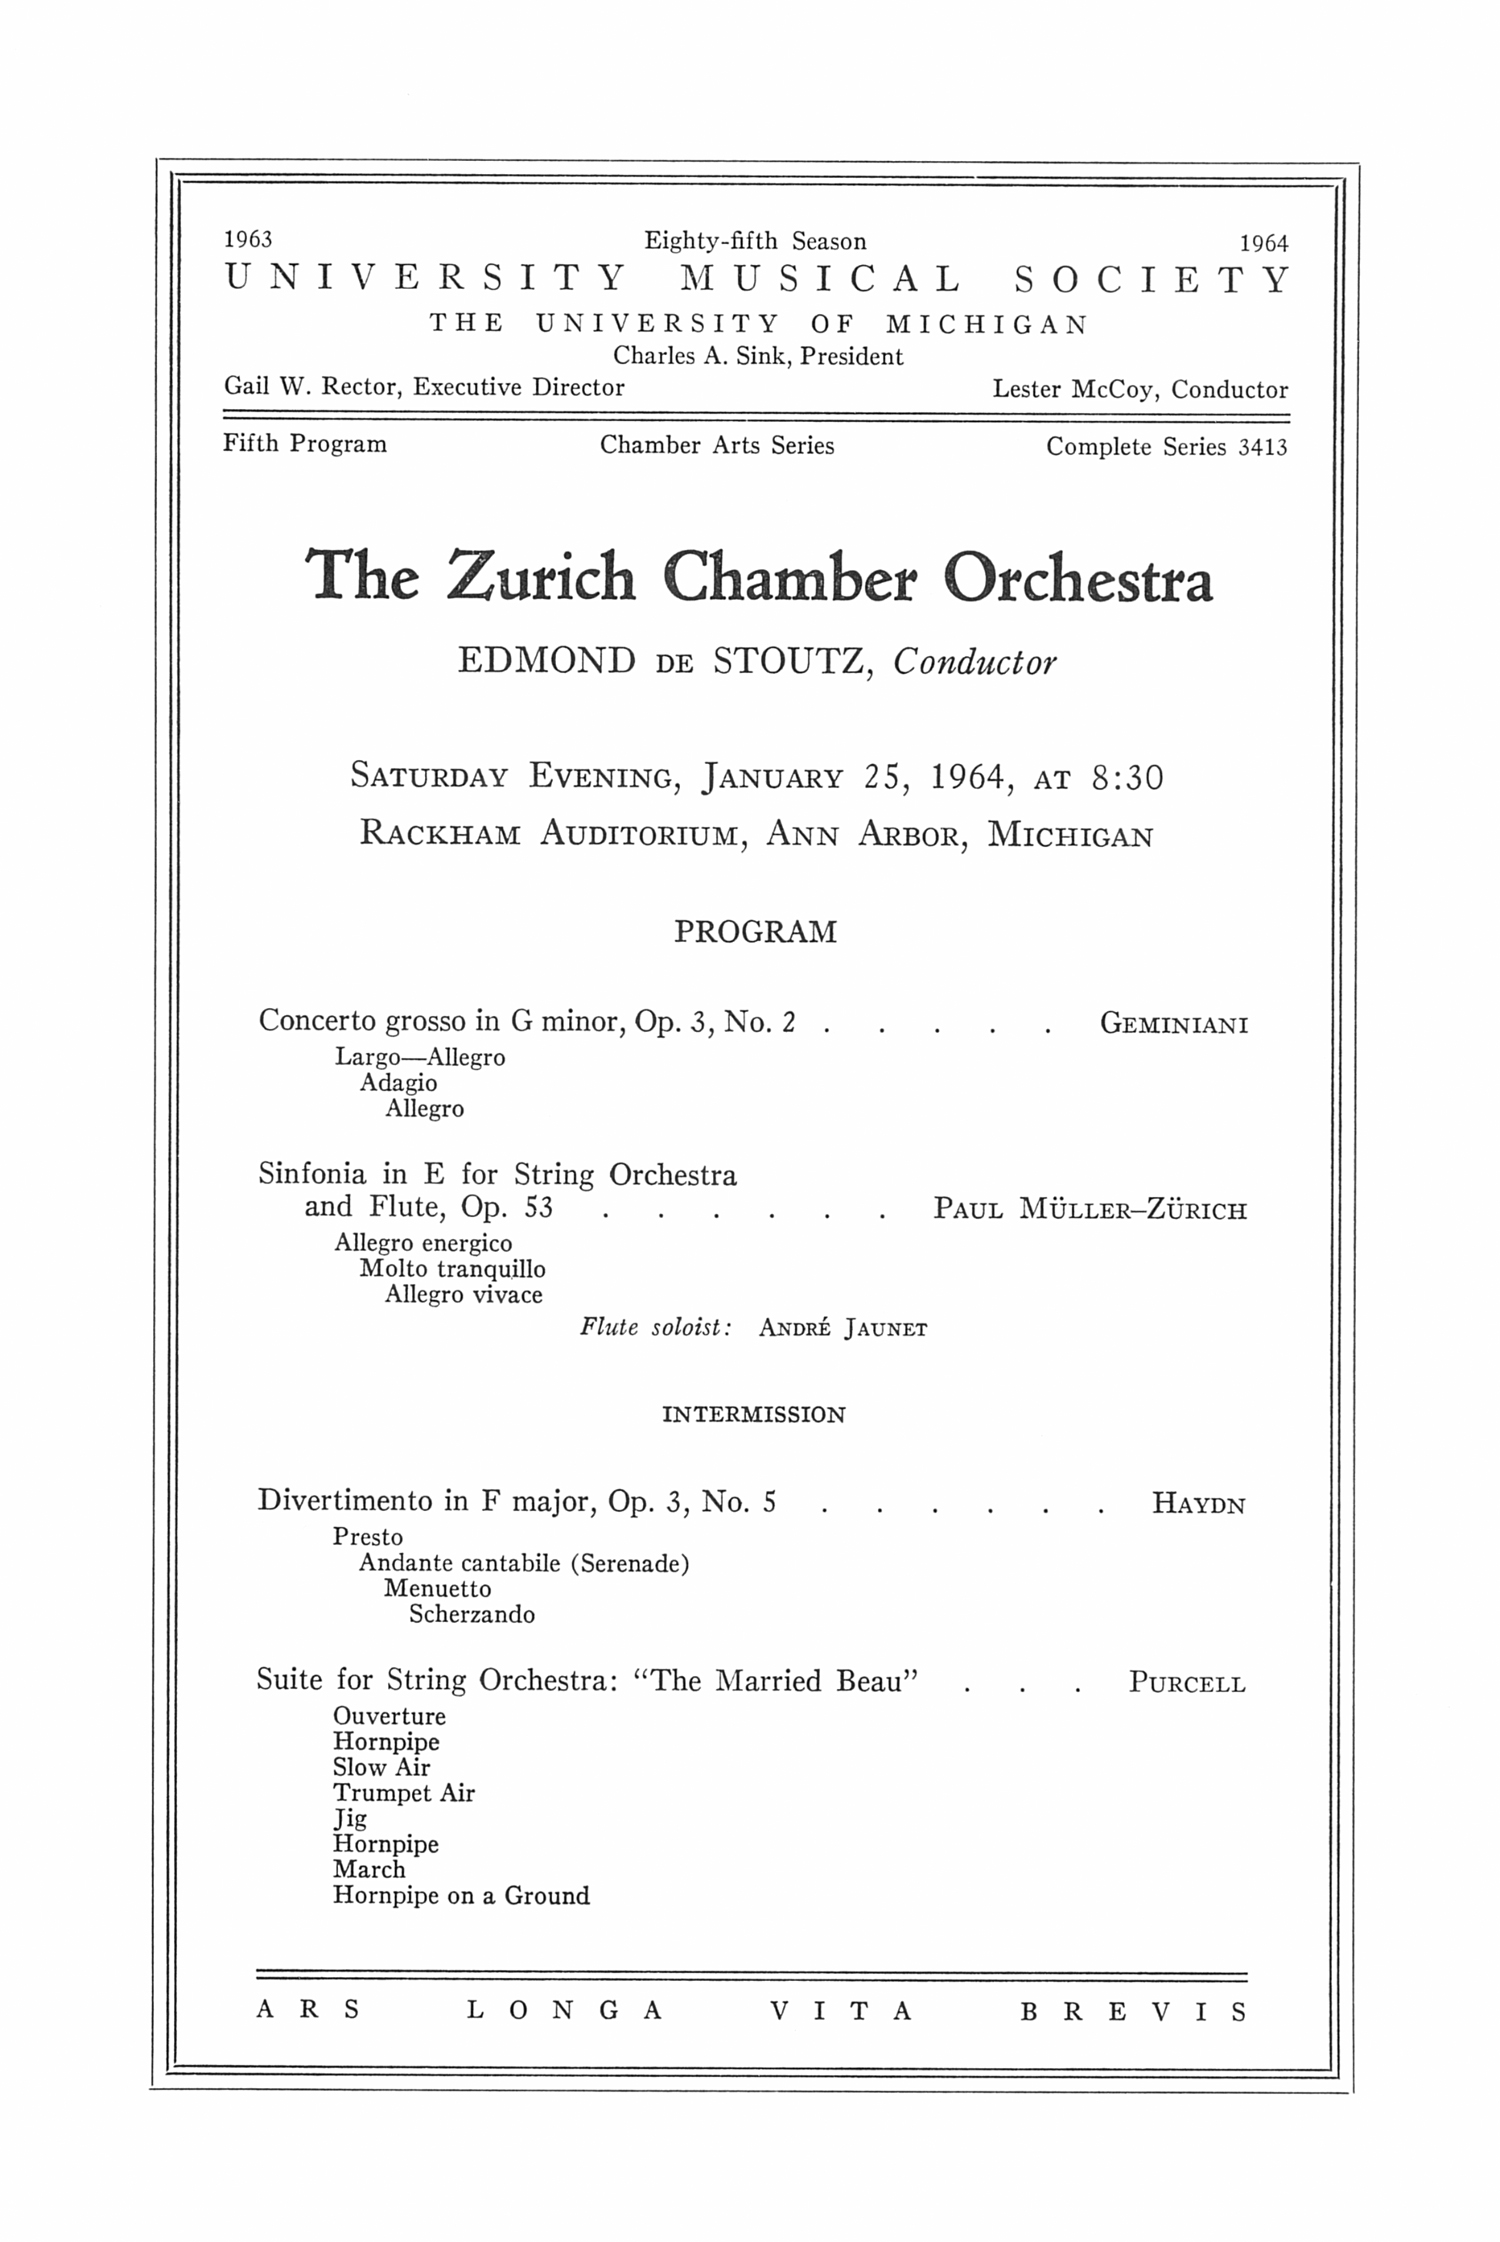 UMS Concert Program, January 25, 1964: The Zurich Chamber Orchestra --  image